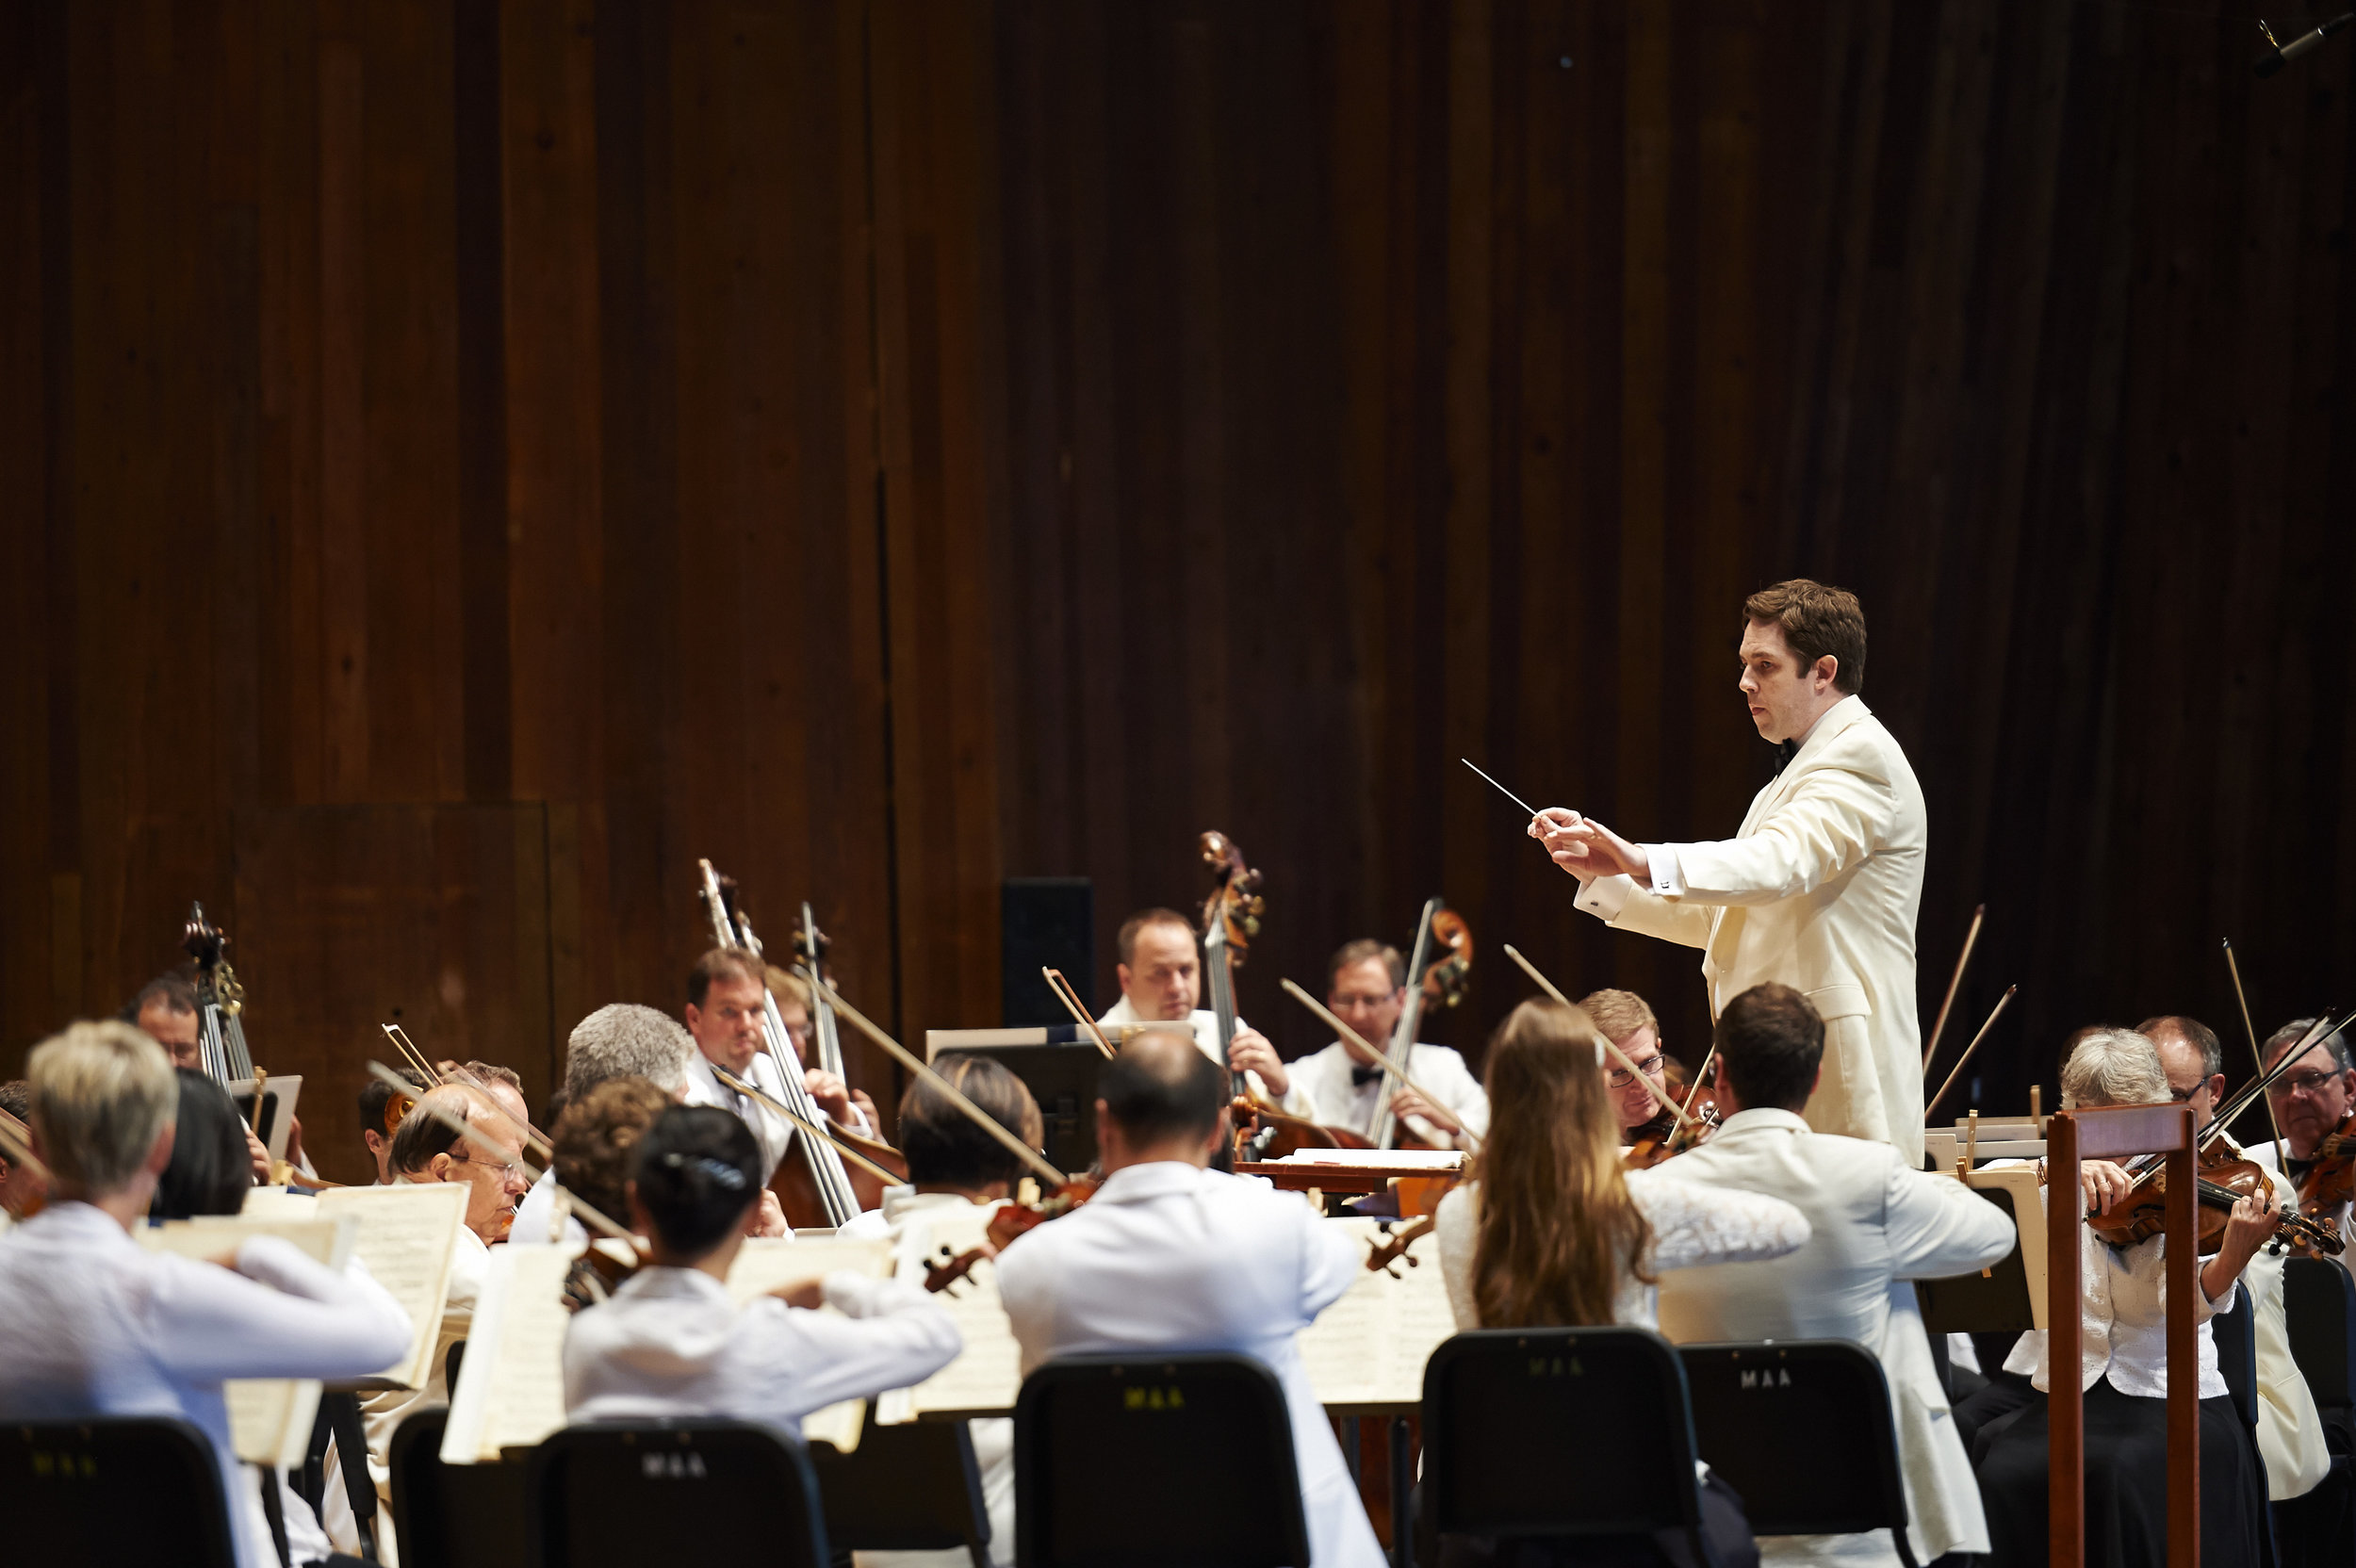 Brett Mitchell (pictured here with The Cleveland Orchestra) will make his debut with the Grant Park Orchestra with works of Kenji Bunch, Saint-Saëns, and Copland on Wednesday, July 19. (Photo by Roger Mastroianni)